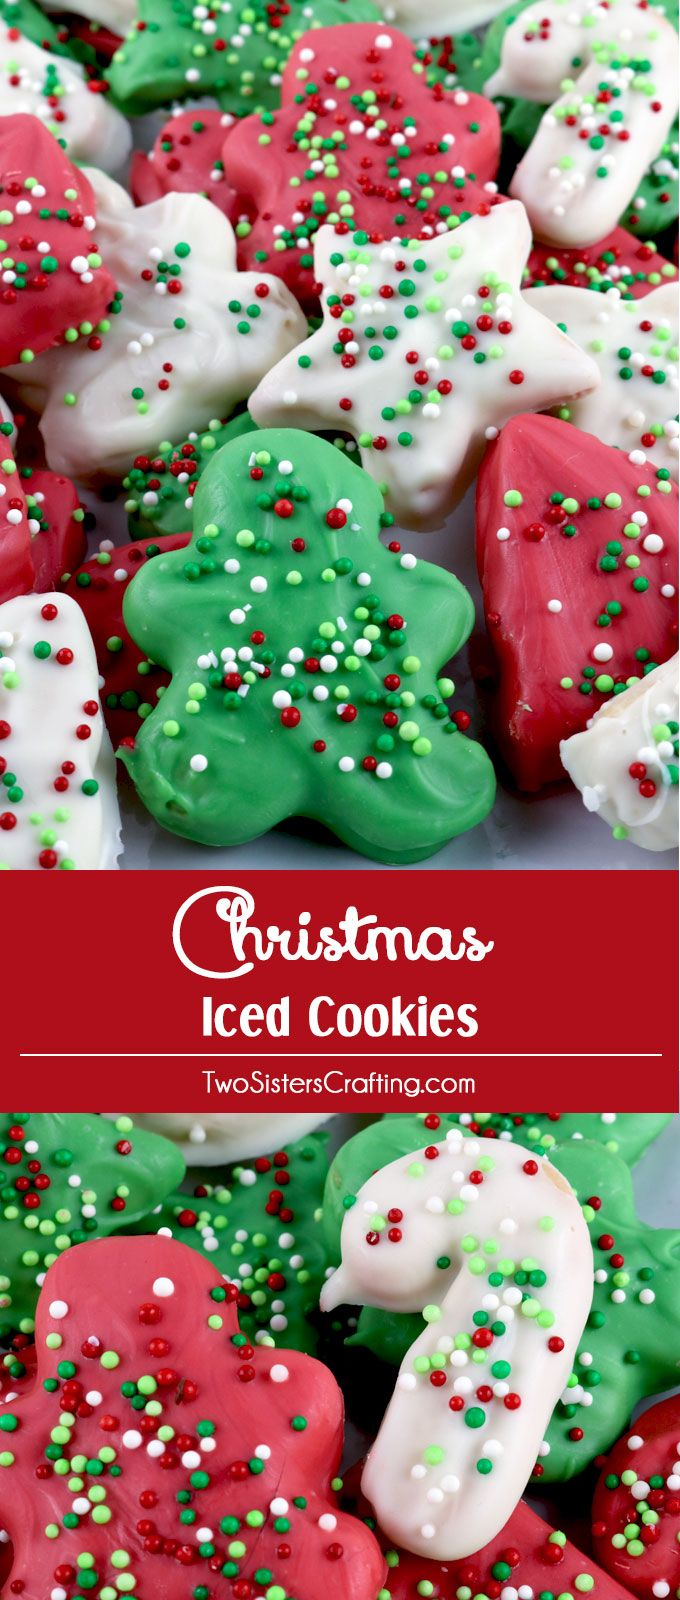 Christmas Iced Cookies - Homemade Circus Animal Cookies but in Holiday shapes and colors. Easy to make and delicious.  Your family will love them!   These Red, White and Green Christmas Treats will definitely stand out at a Holiday Party or Christmas Cookie Exchange.  Pin this yummy Christmas Dessert for later and follow us for more fun Christmas Food Ideas.